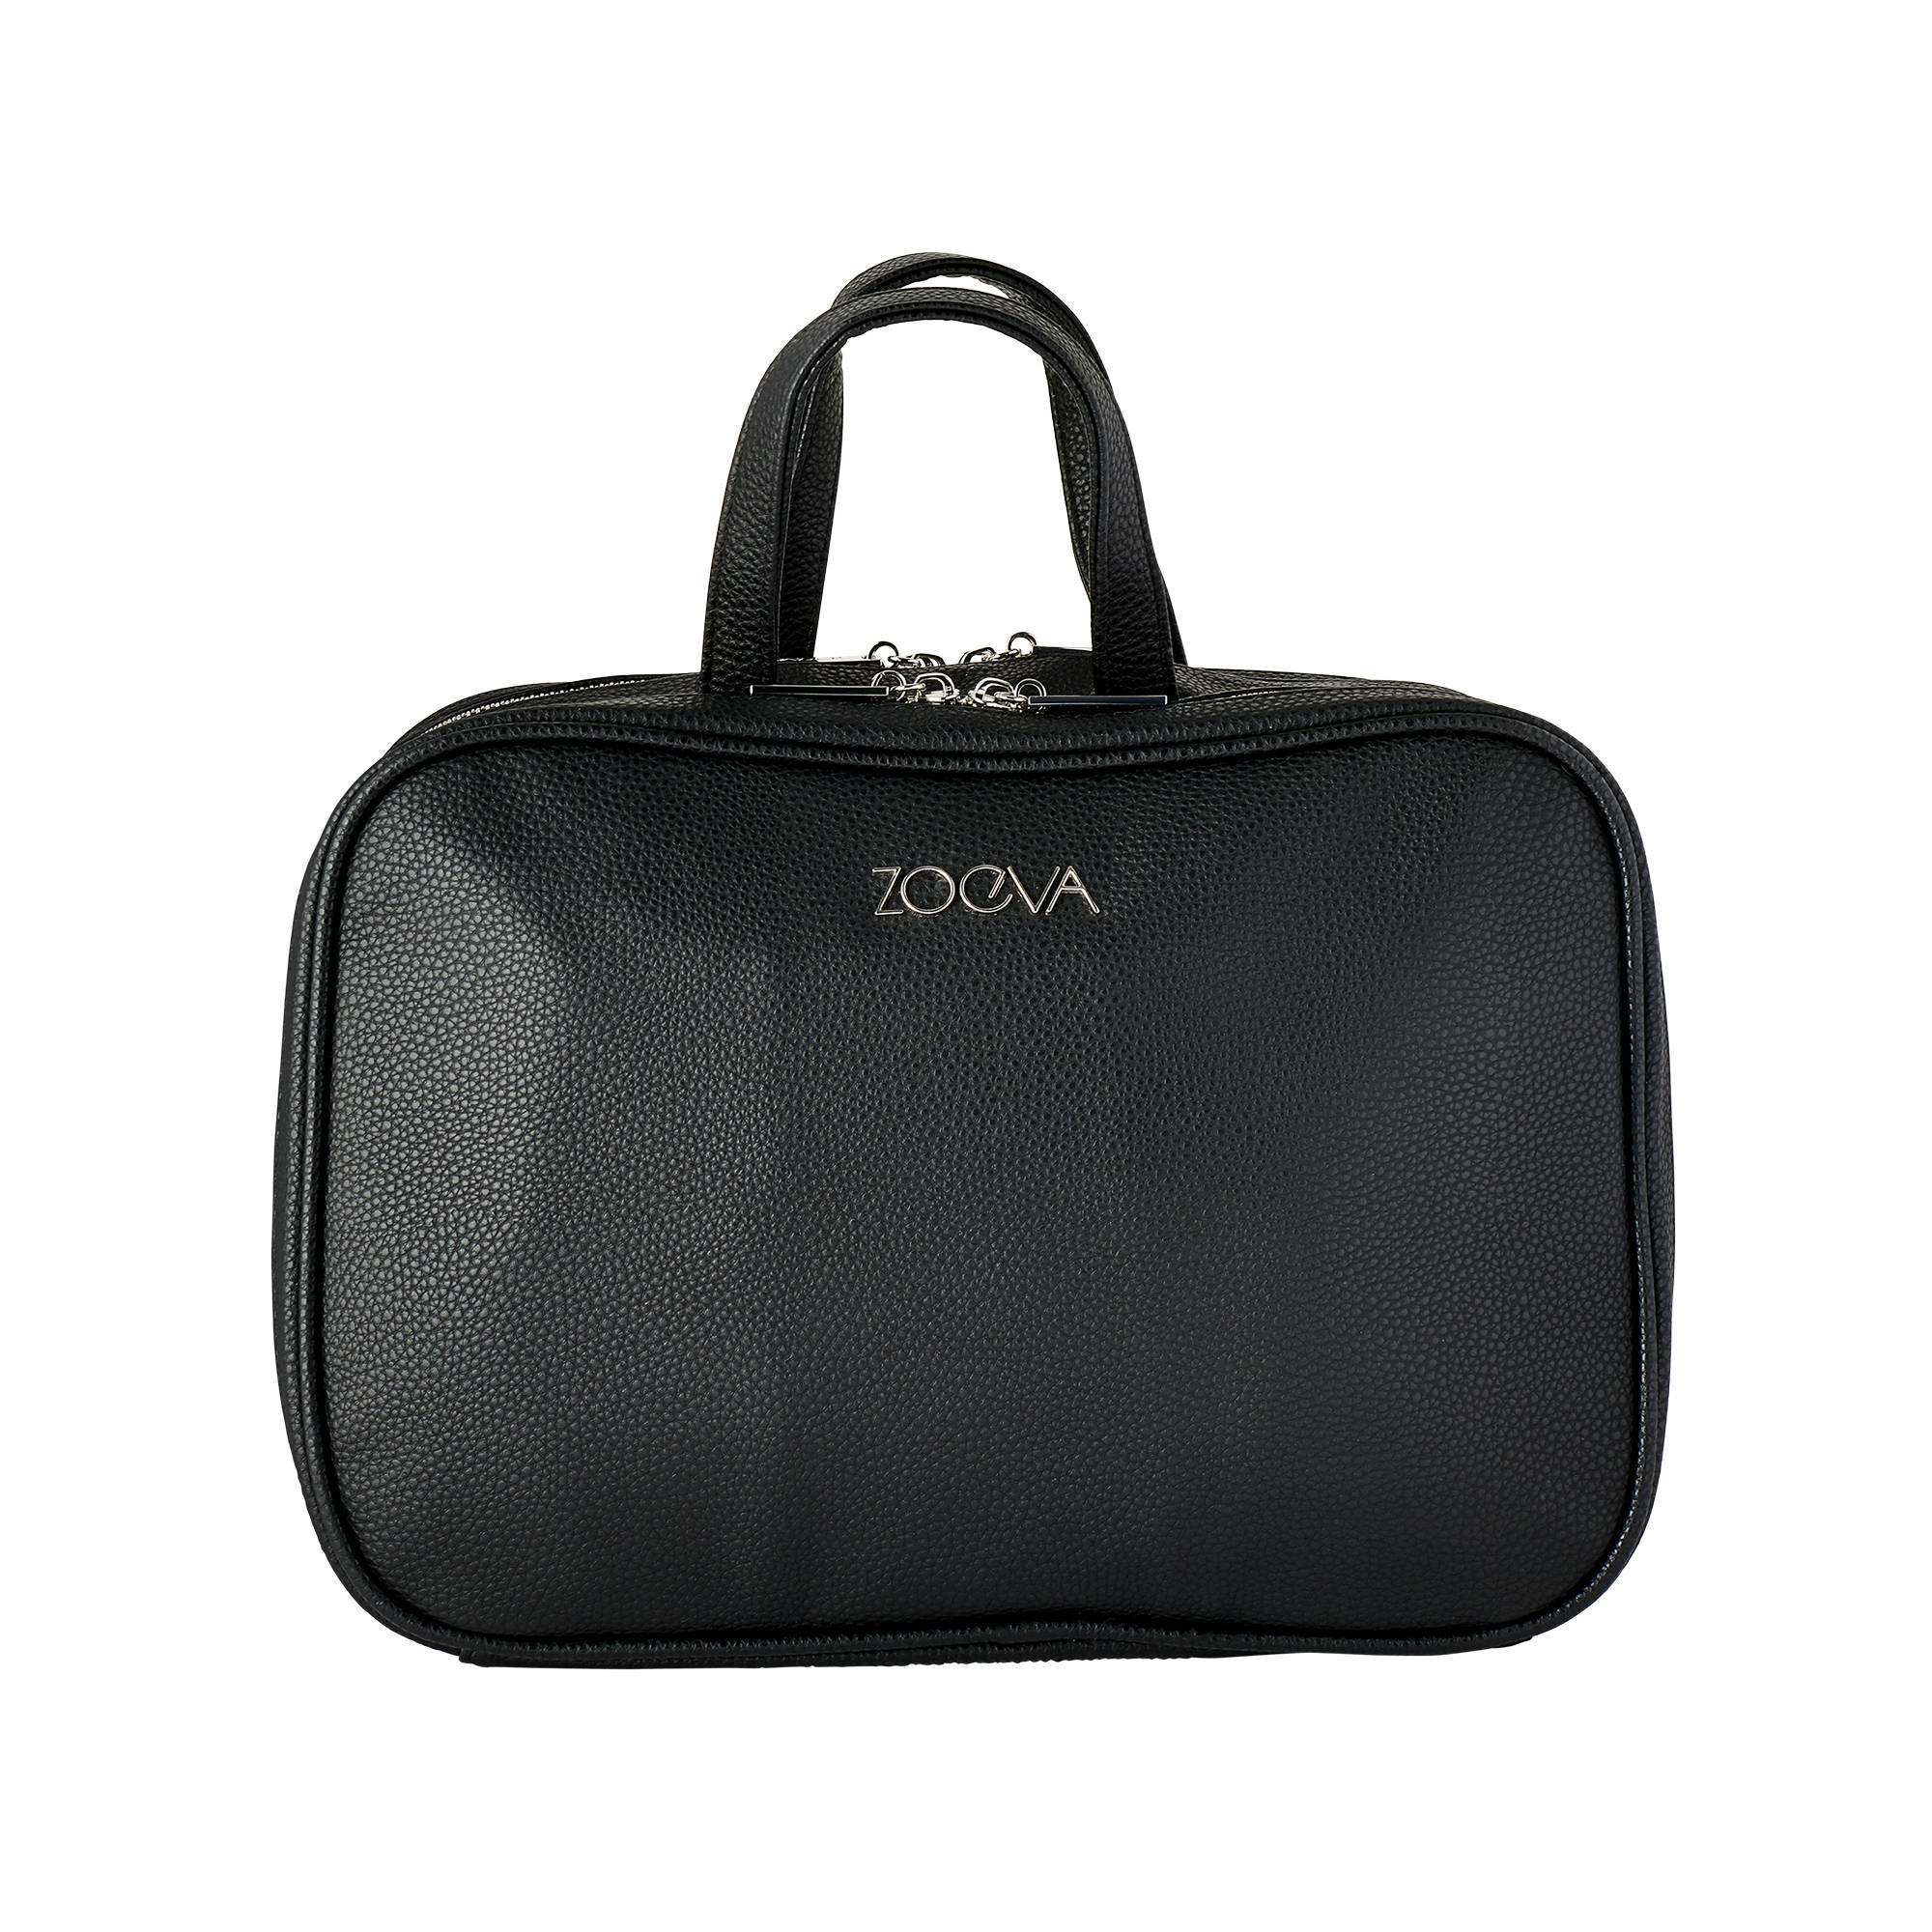 "ZOEVA ""Makeup Tote Zoe Bag """